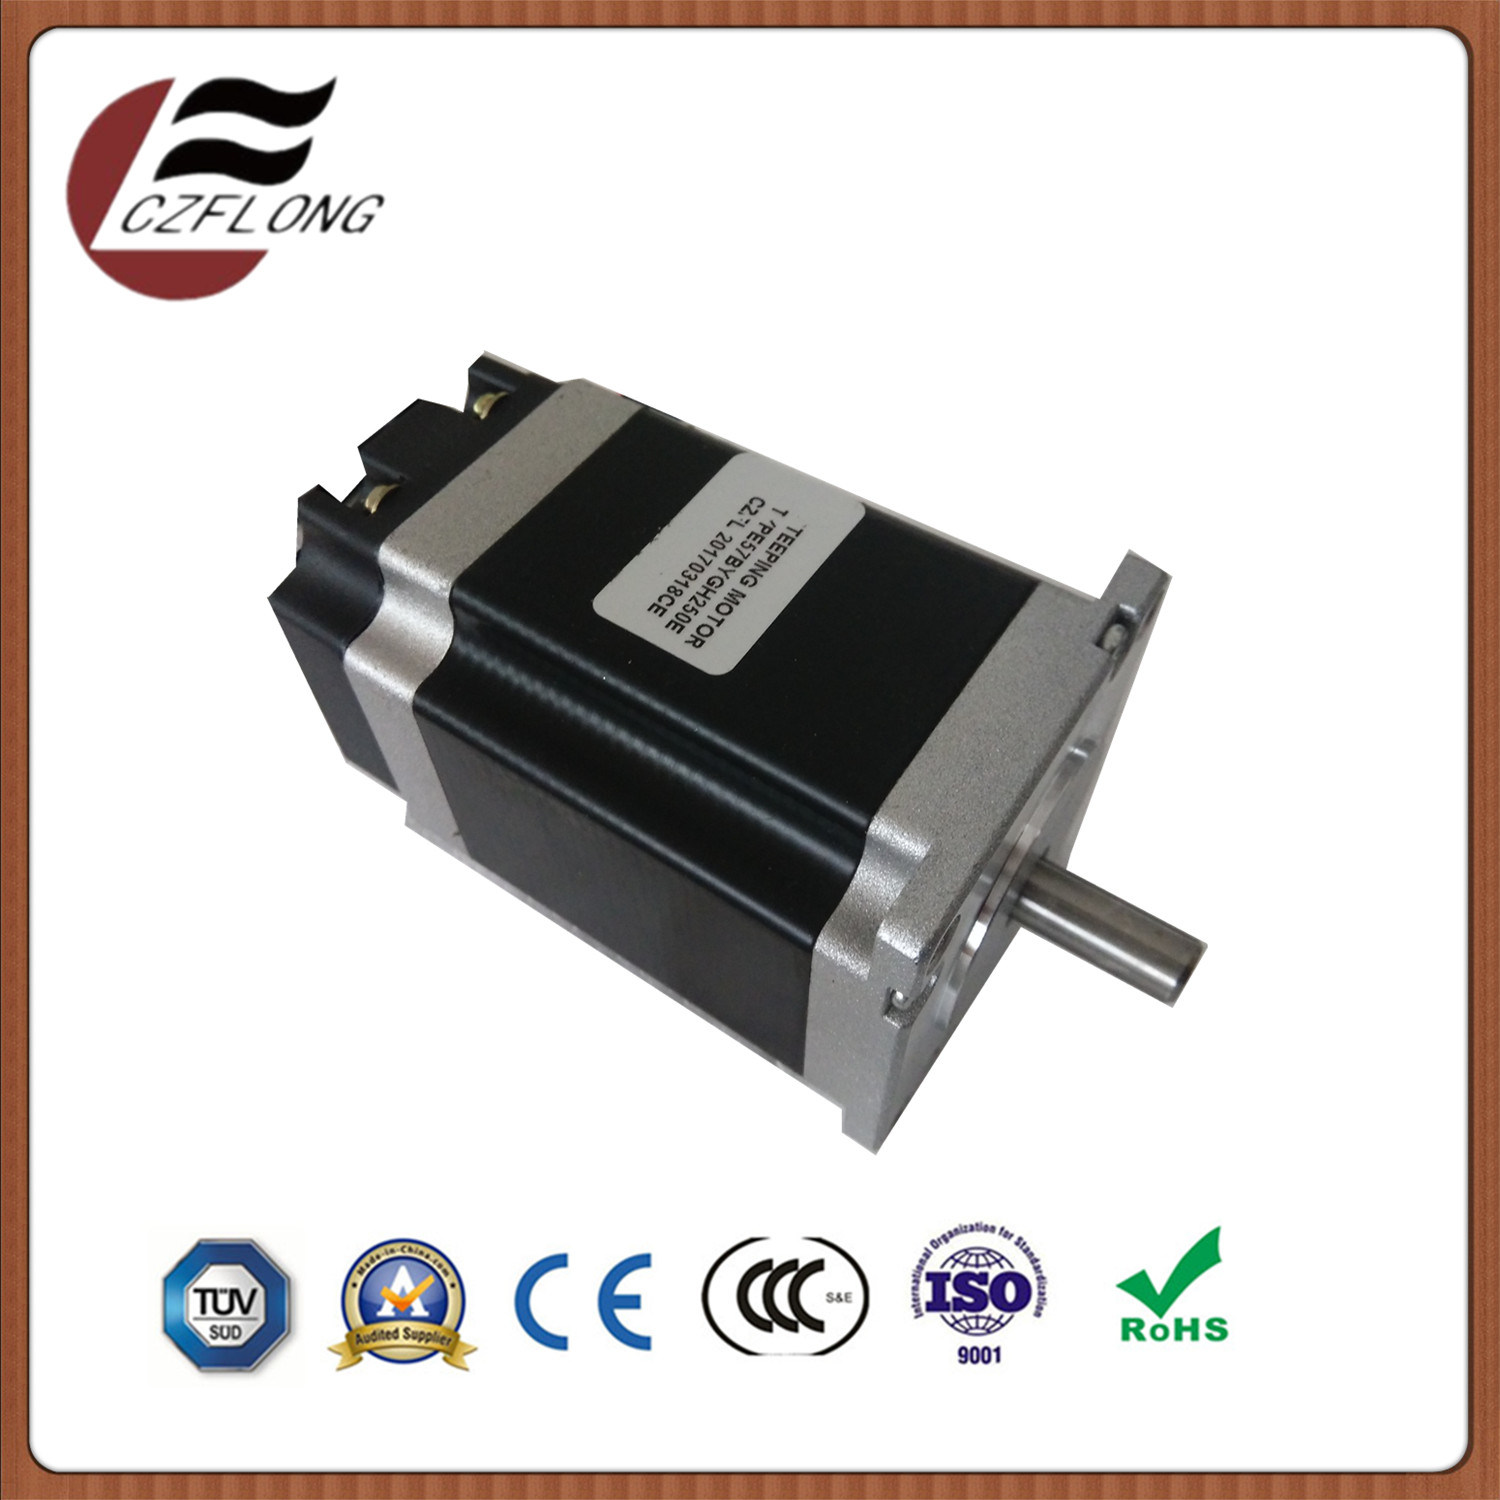 60*60mm NEMA24 Stepper Motor for Automation Equipment with RoHS